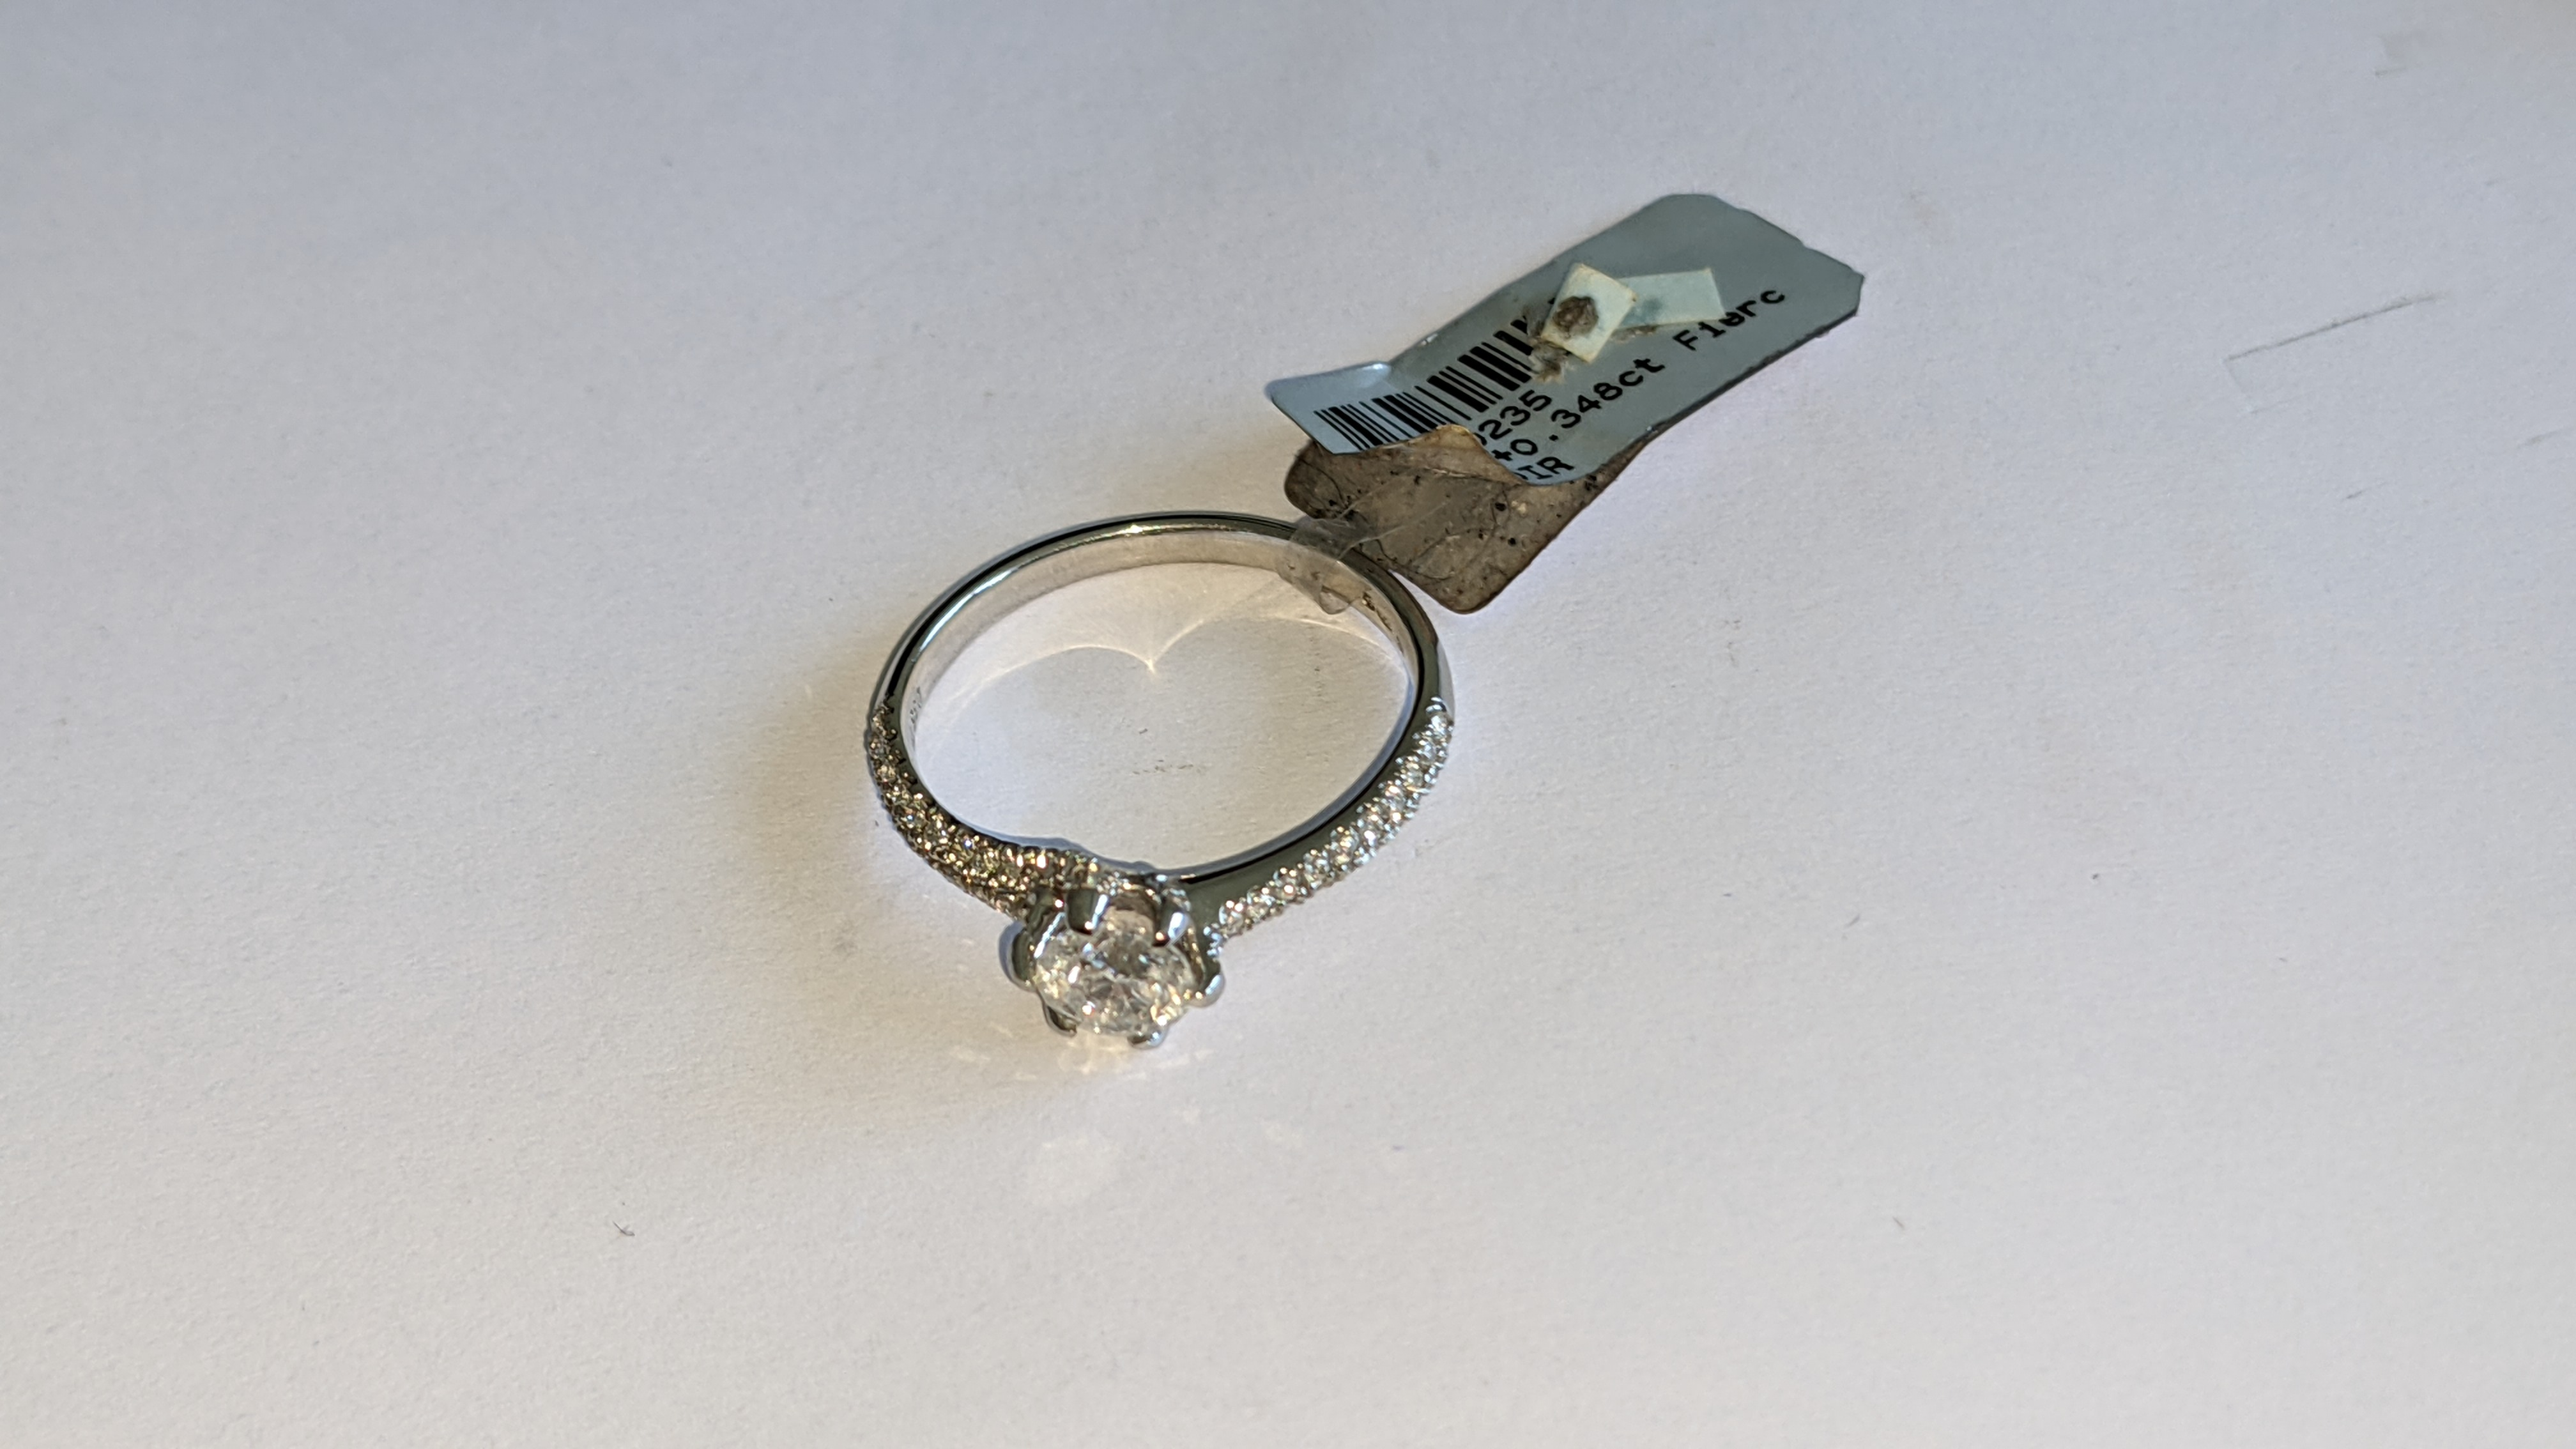 Platinum 950 diamond ring with 0.55ct central stone & 0.348ct of smaller stones on the shoulders. RR - Image 8 of 16